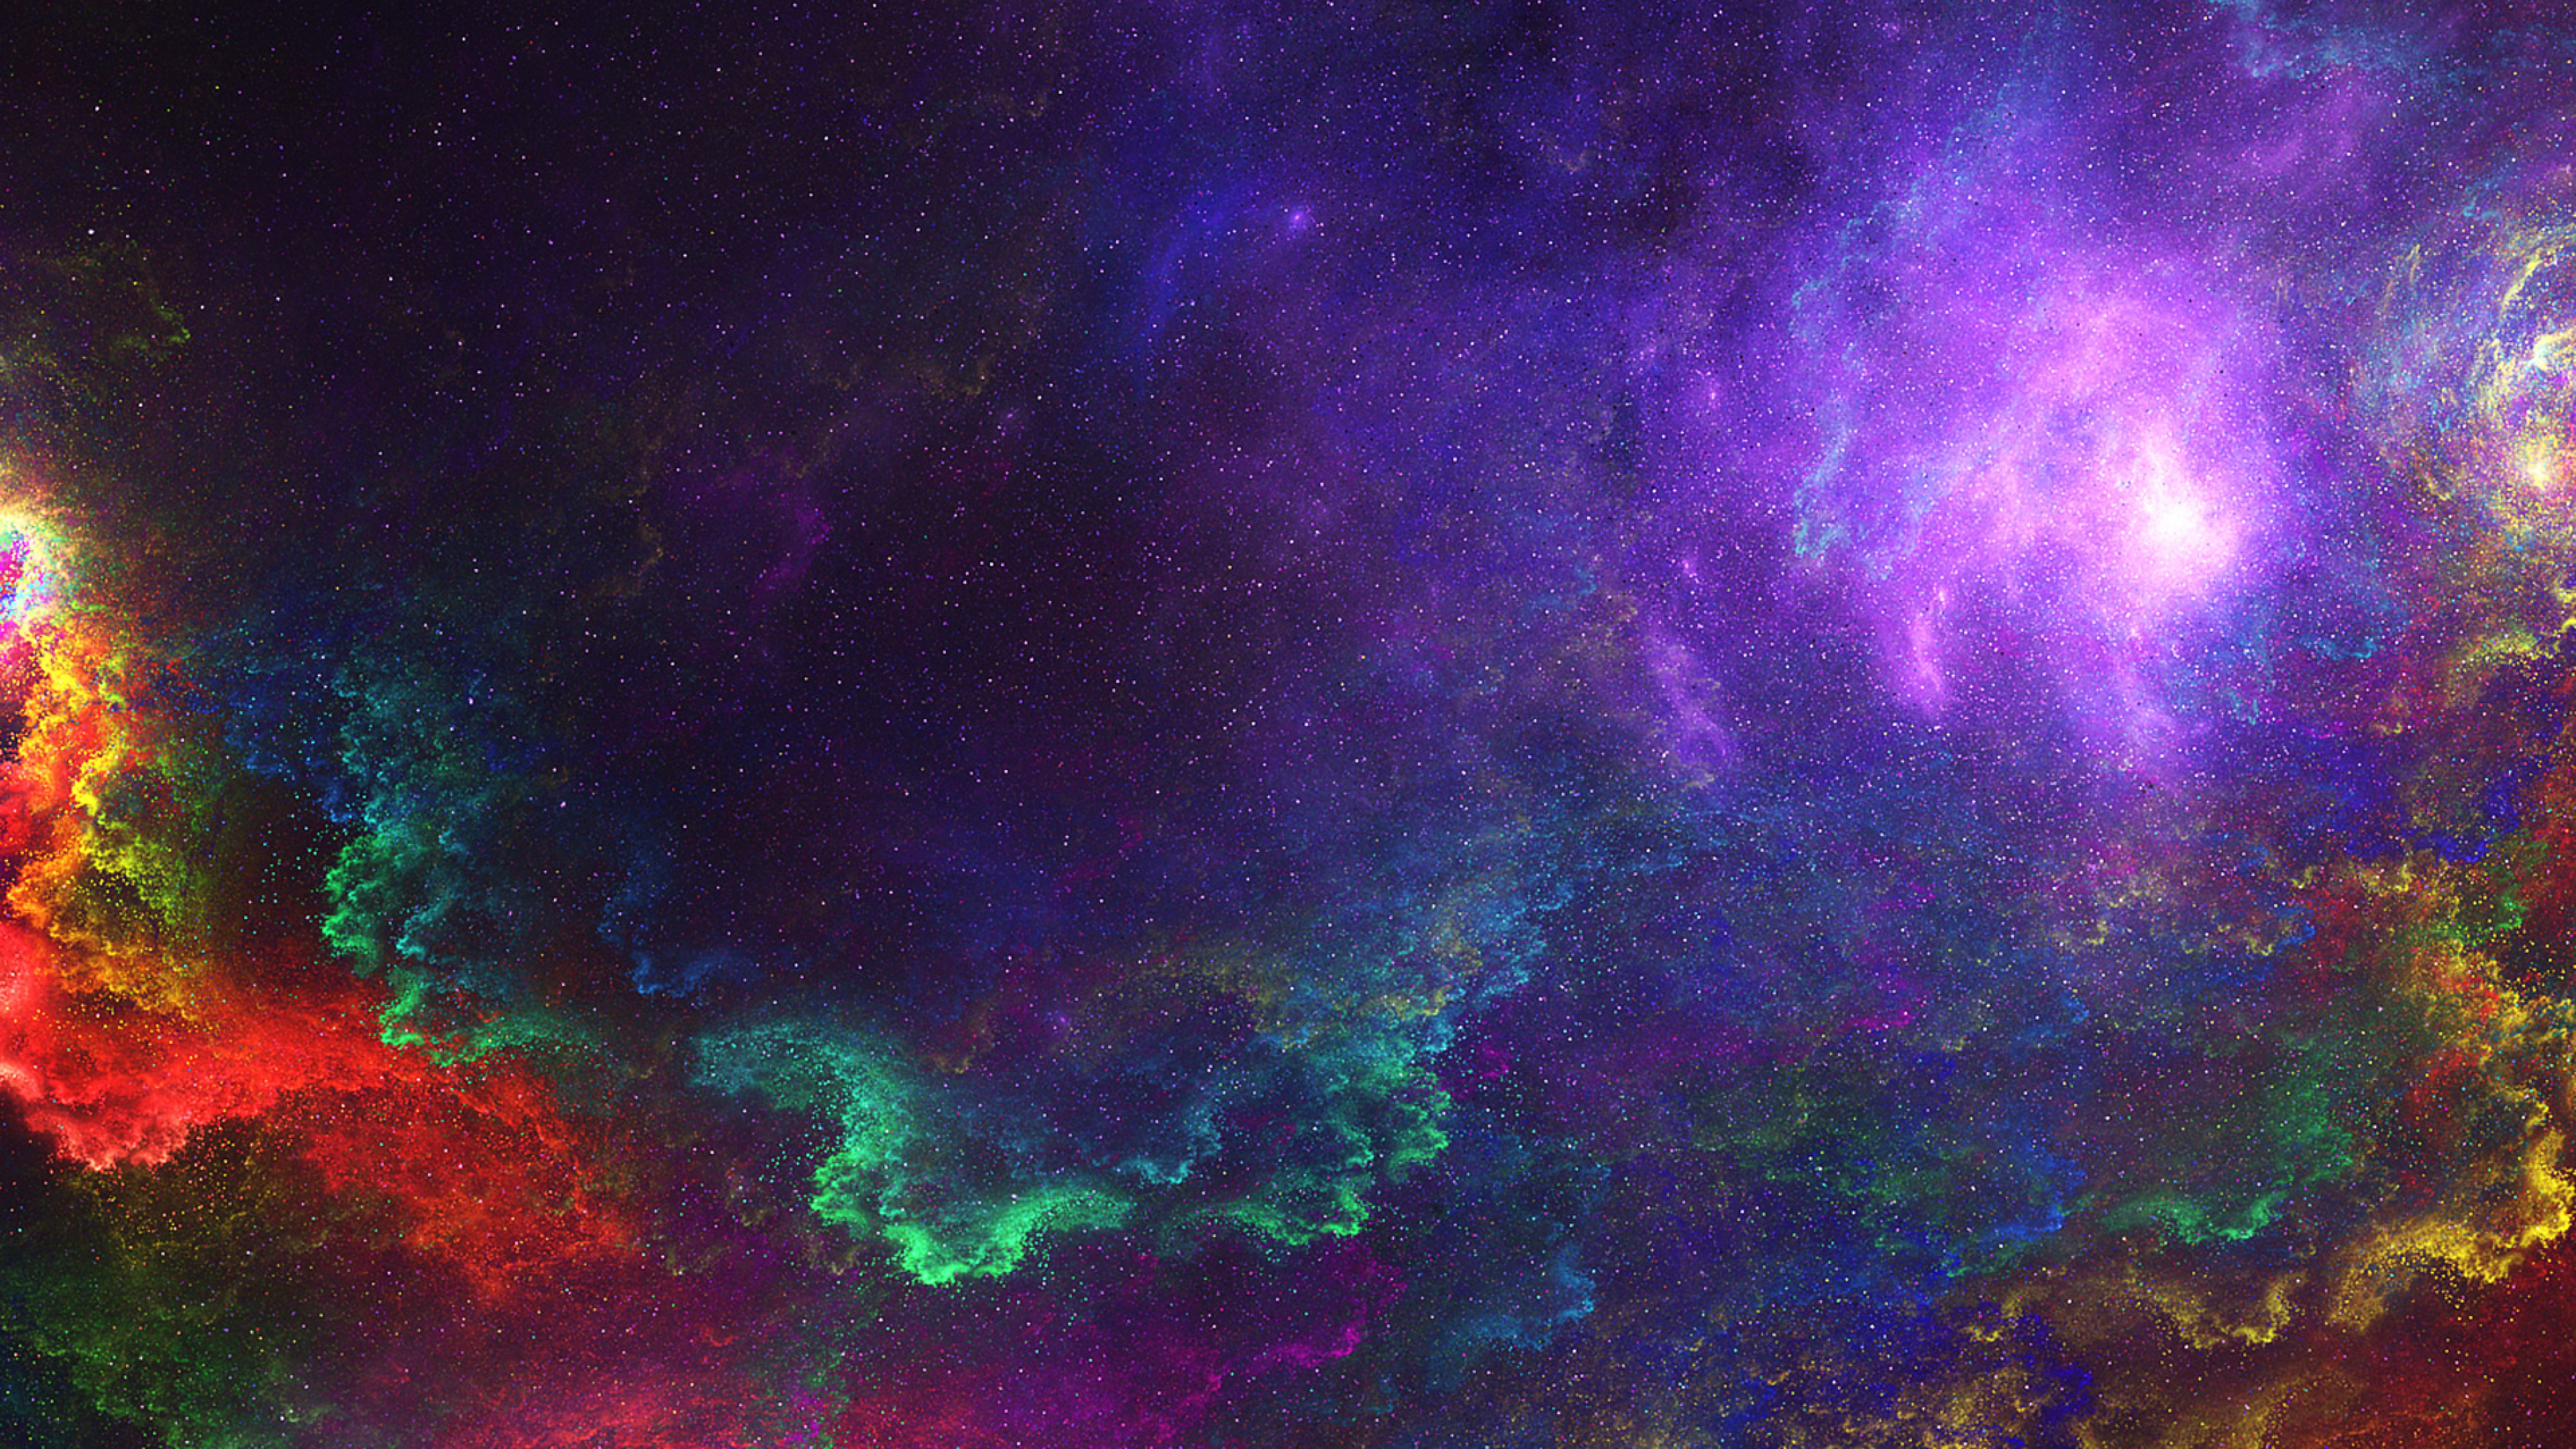 Top 25 Samsung Galaxy S4 Screen Saver Wallpapers: Colorful Space, Full HD Wallpaper